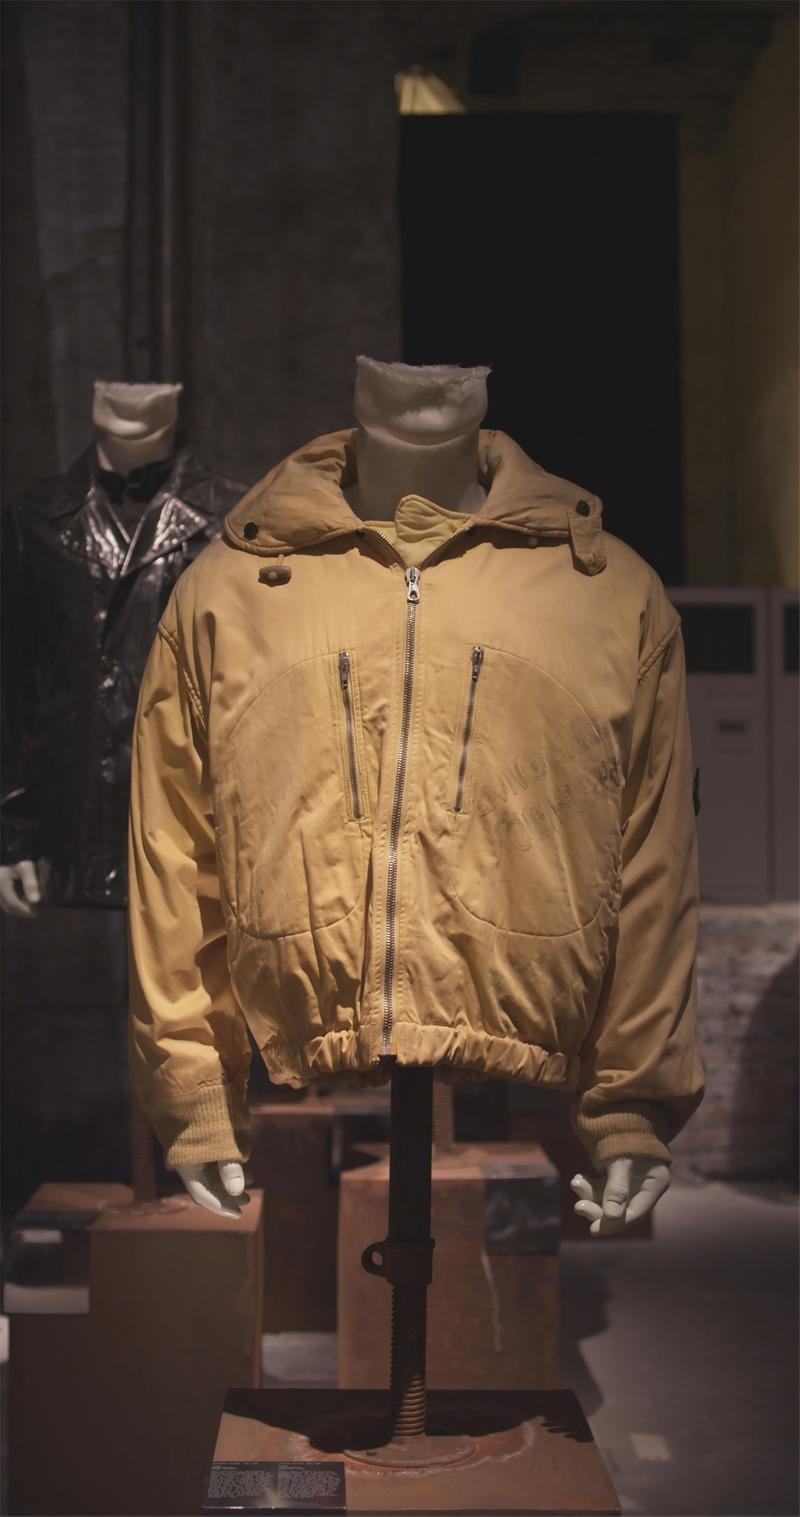 Mustard zippered jacket with wide collar displayed on mannequin bust